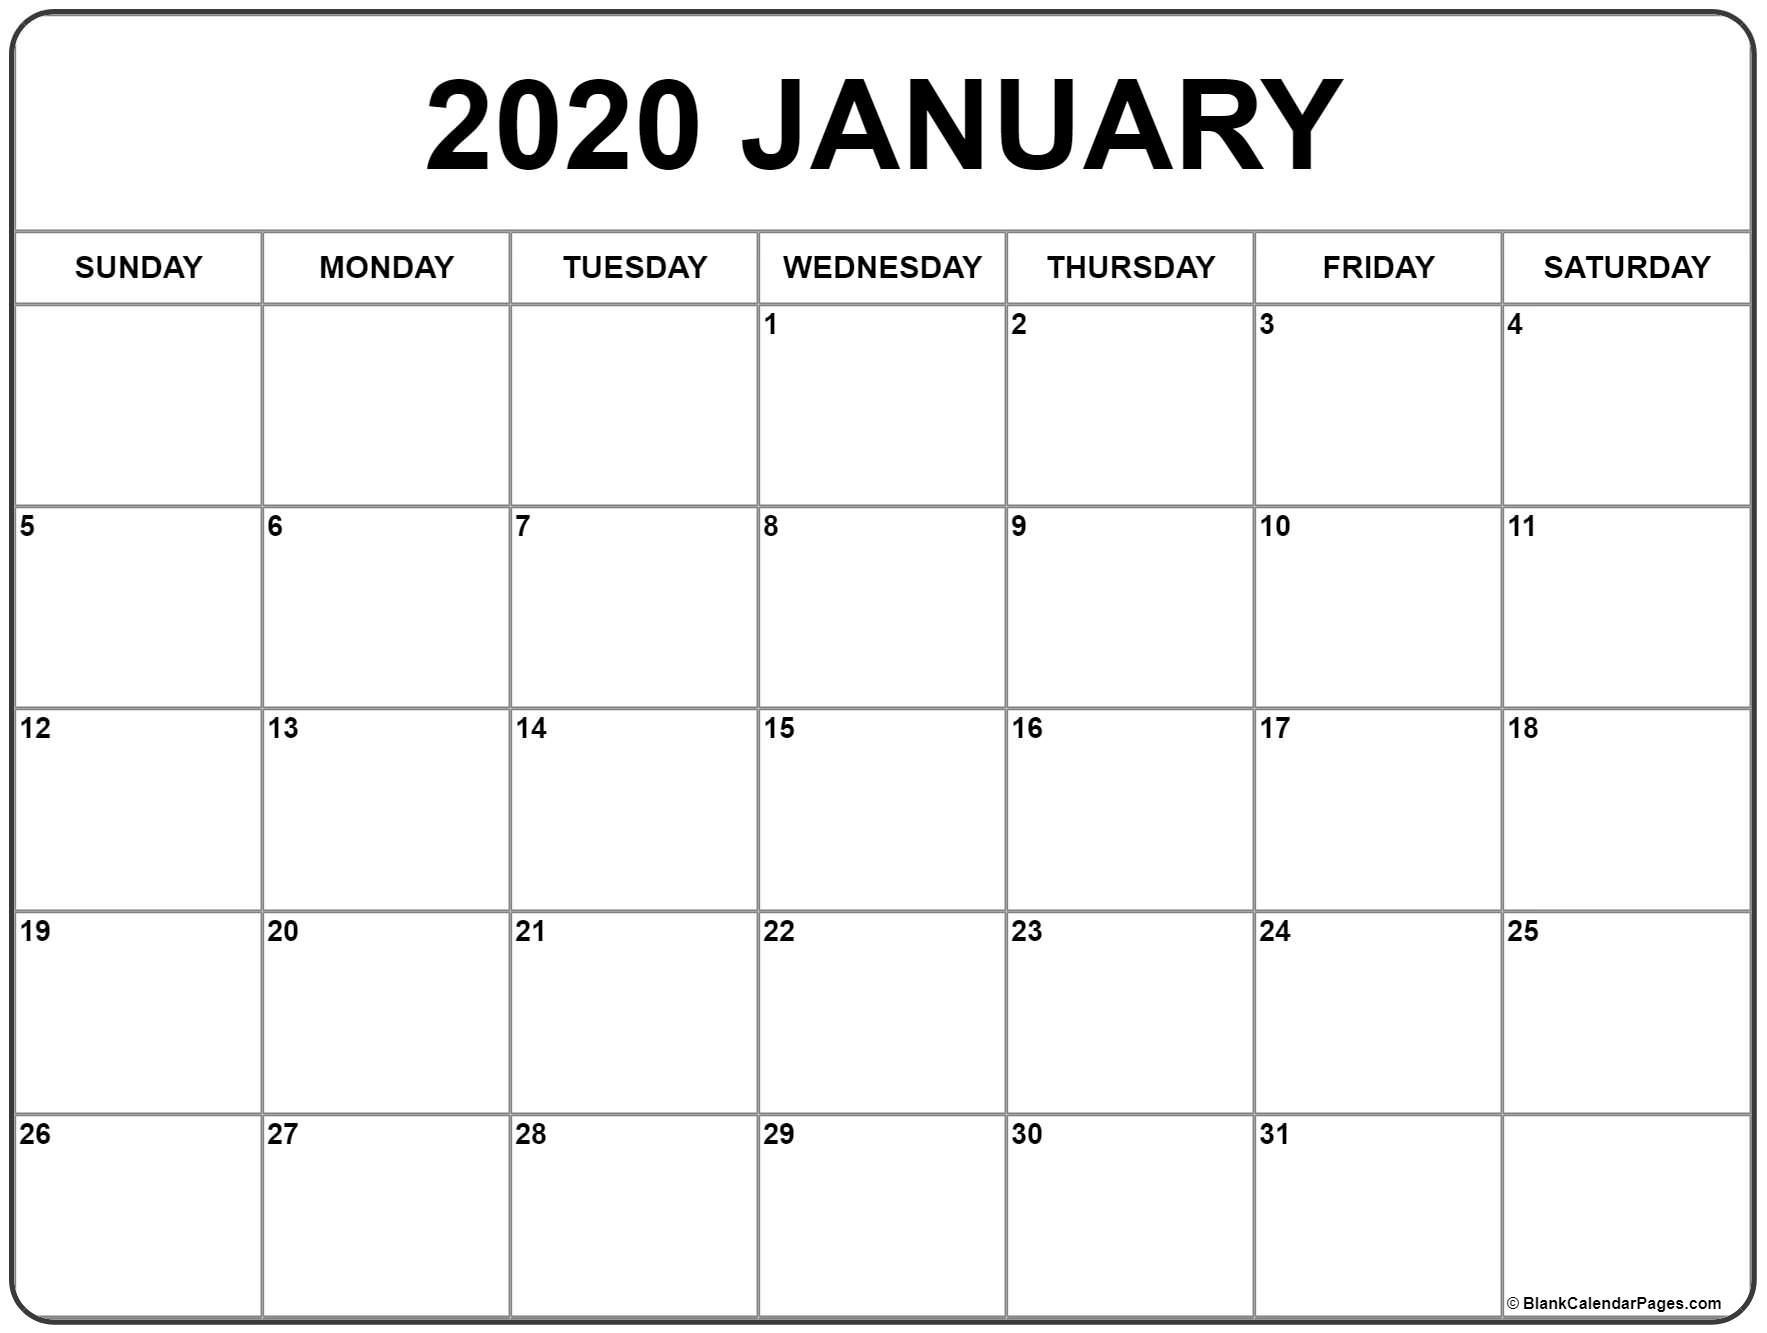 January 2020 Calendar | Free Printable Monthly Calendars  Free 2020 Advent Calendar Printable